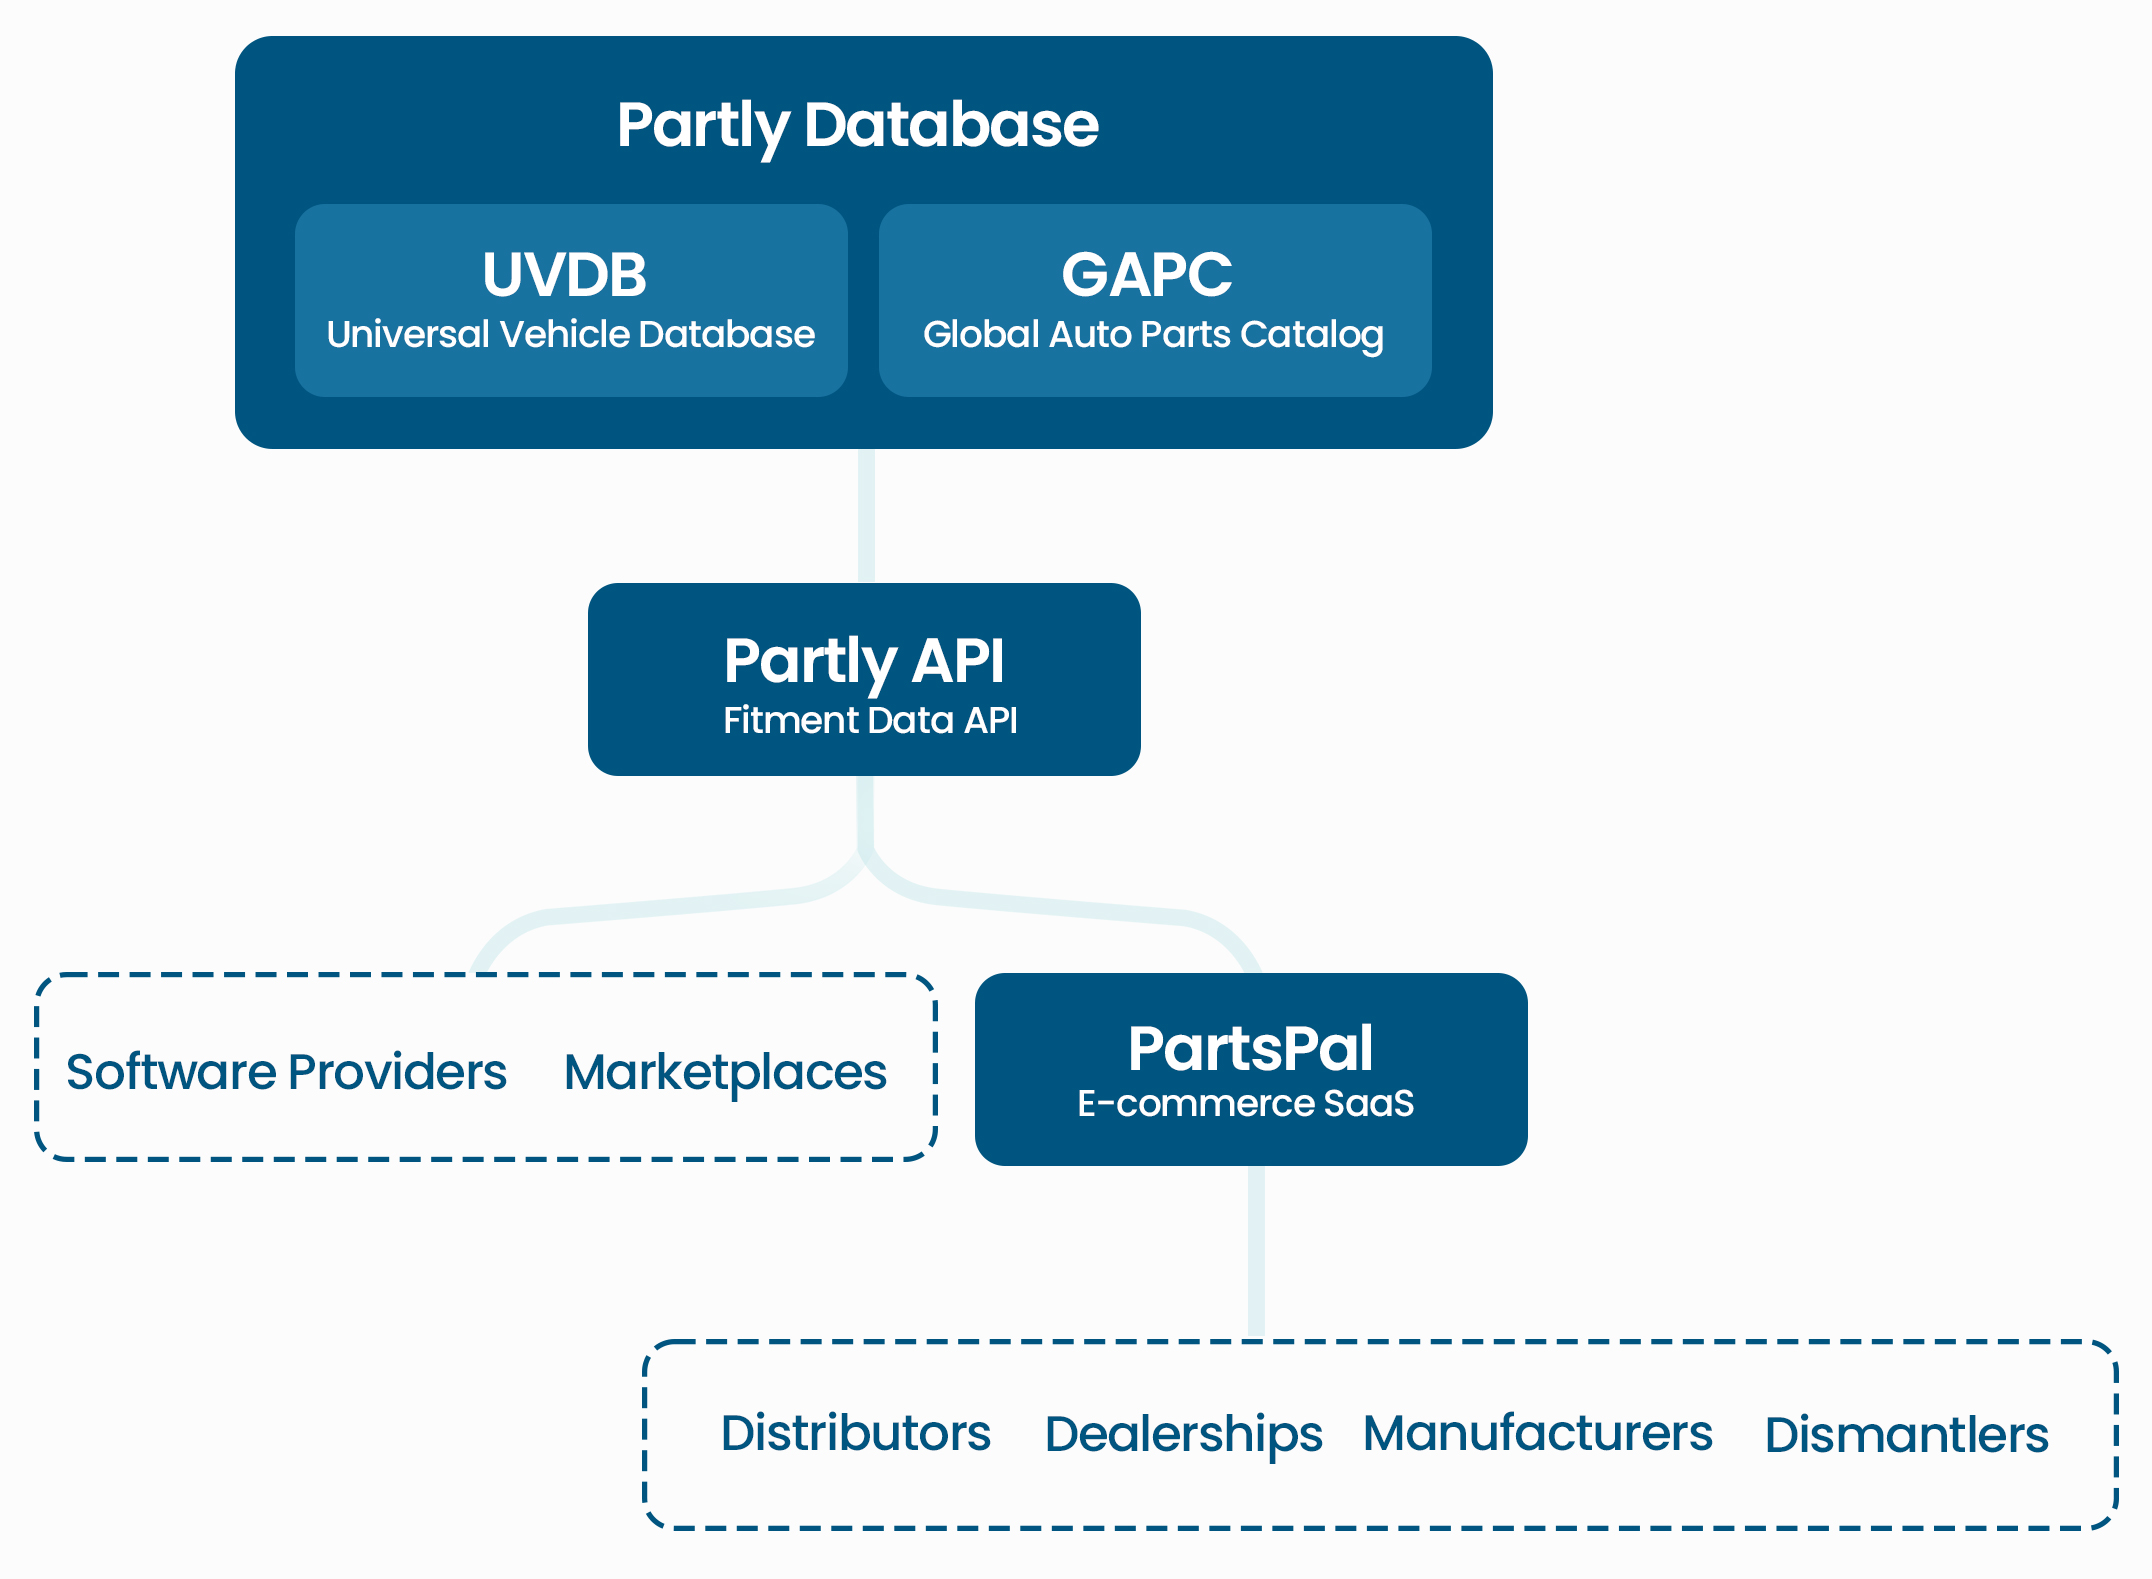 Auto parts infrastructure Partly Database, API and PartsPal